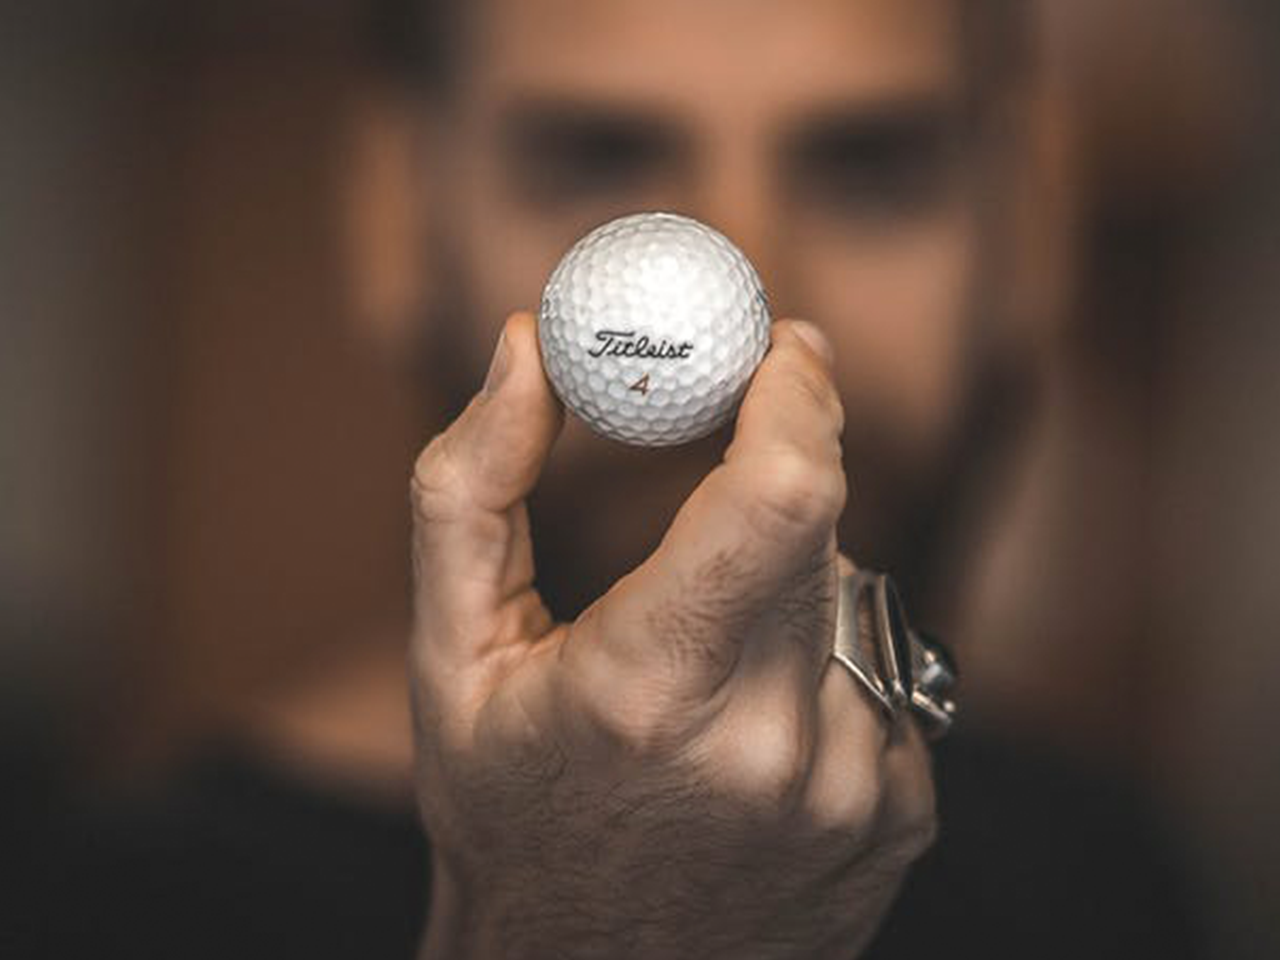 golf gall held in a hand